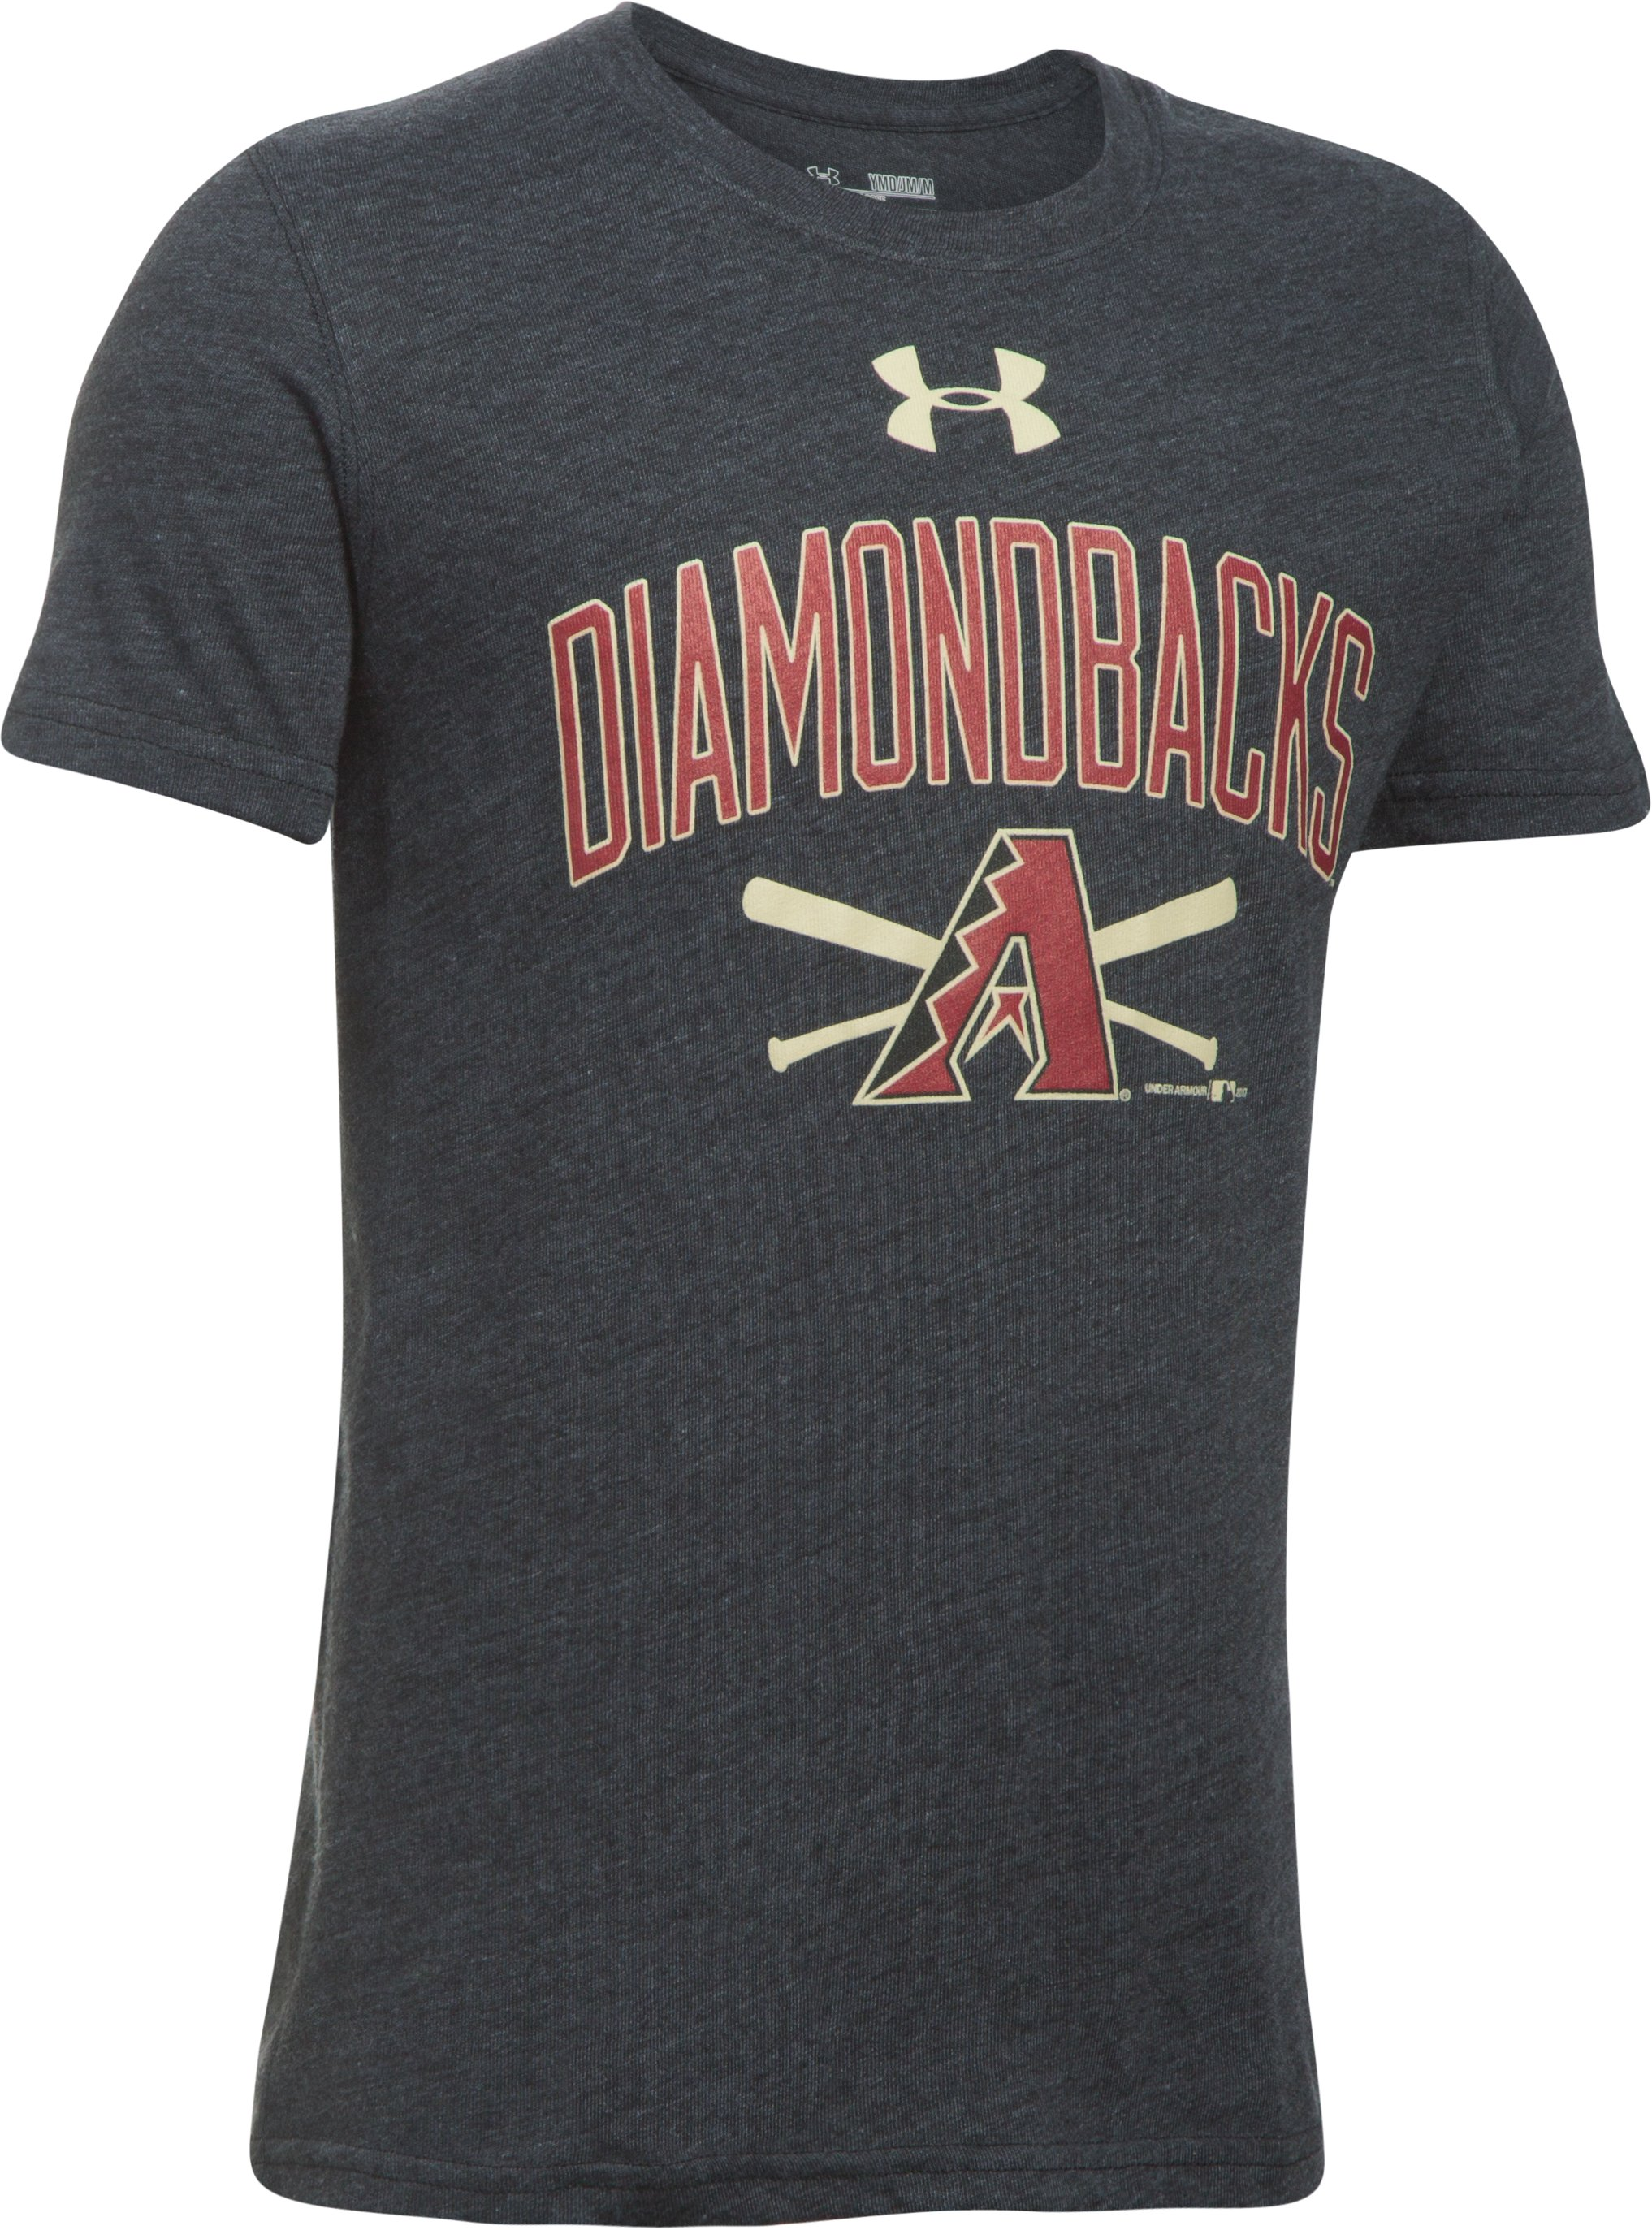 Boys' Arizona Diamondbacks Tri-Blend T-Shirt, Black ,